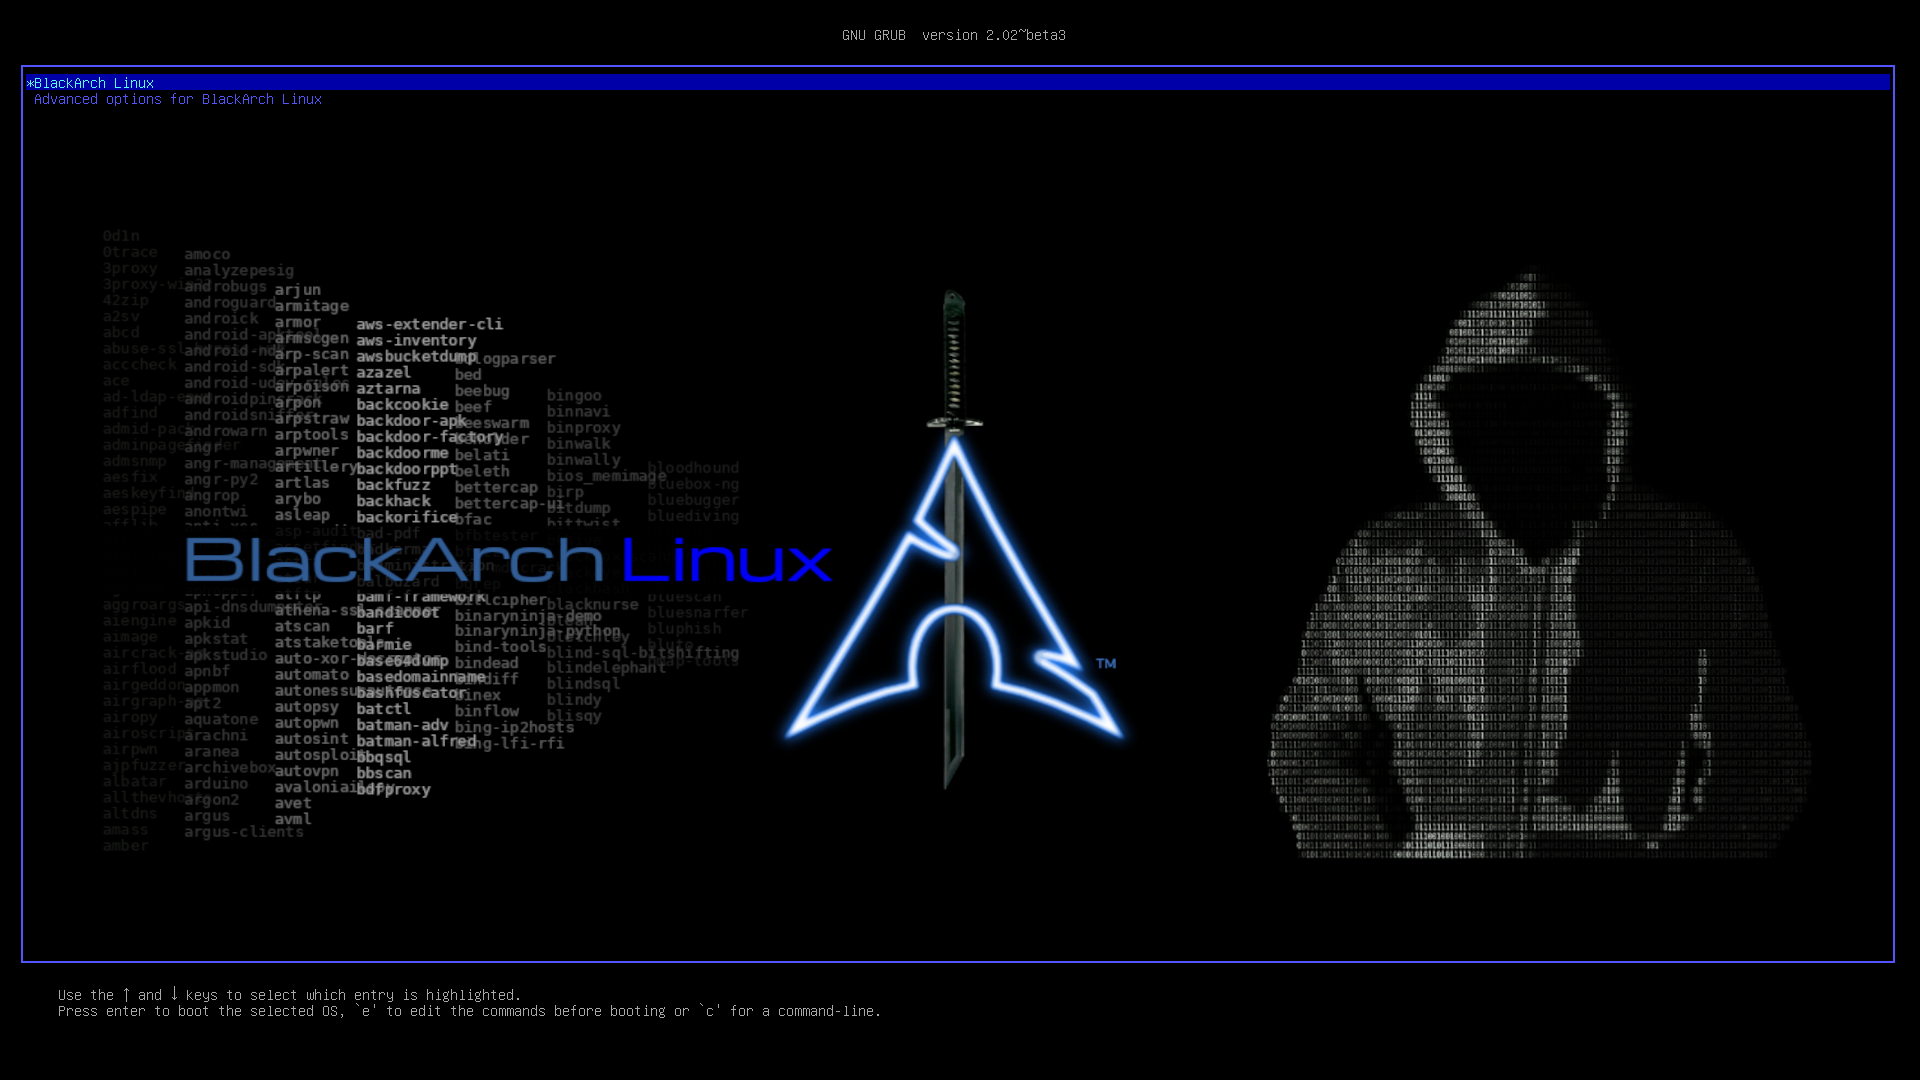 BlackArch Linux wallpaper